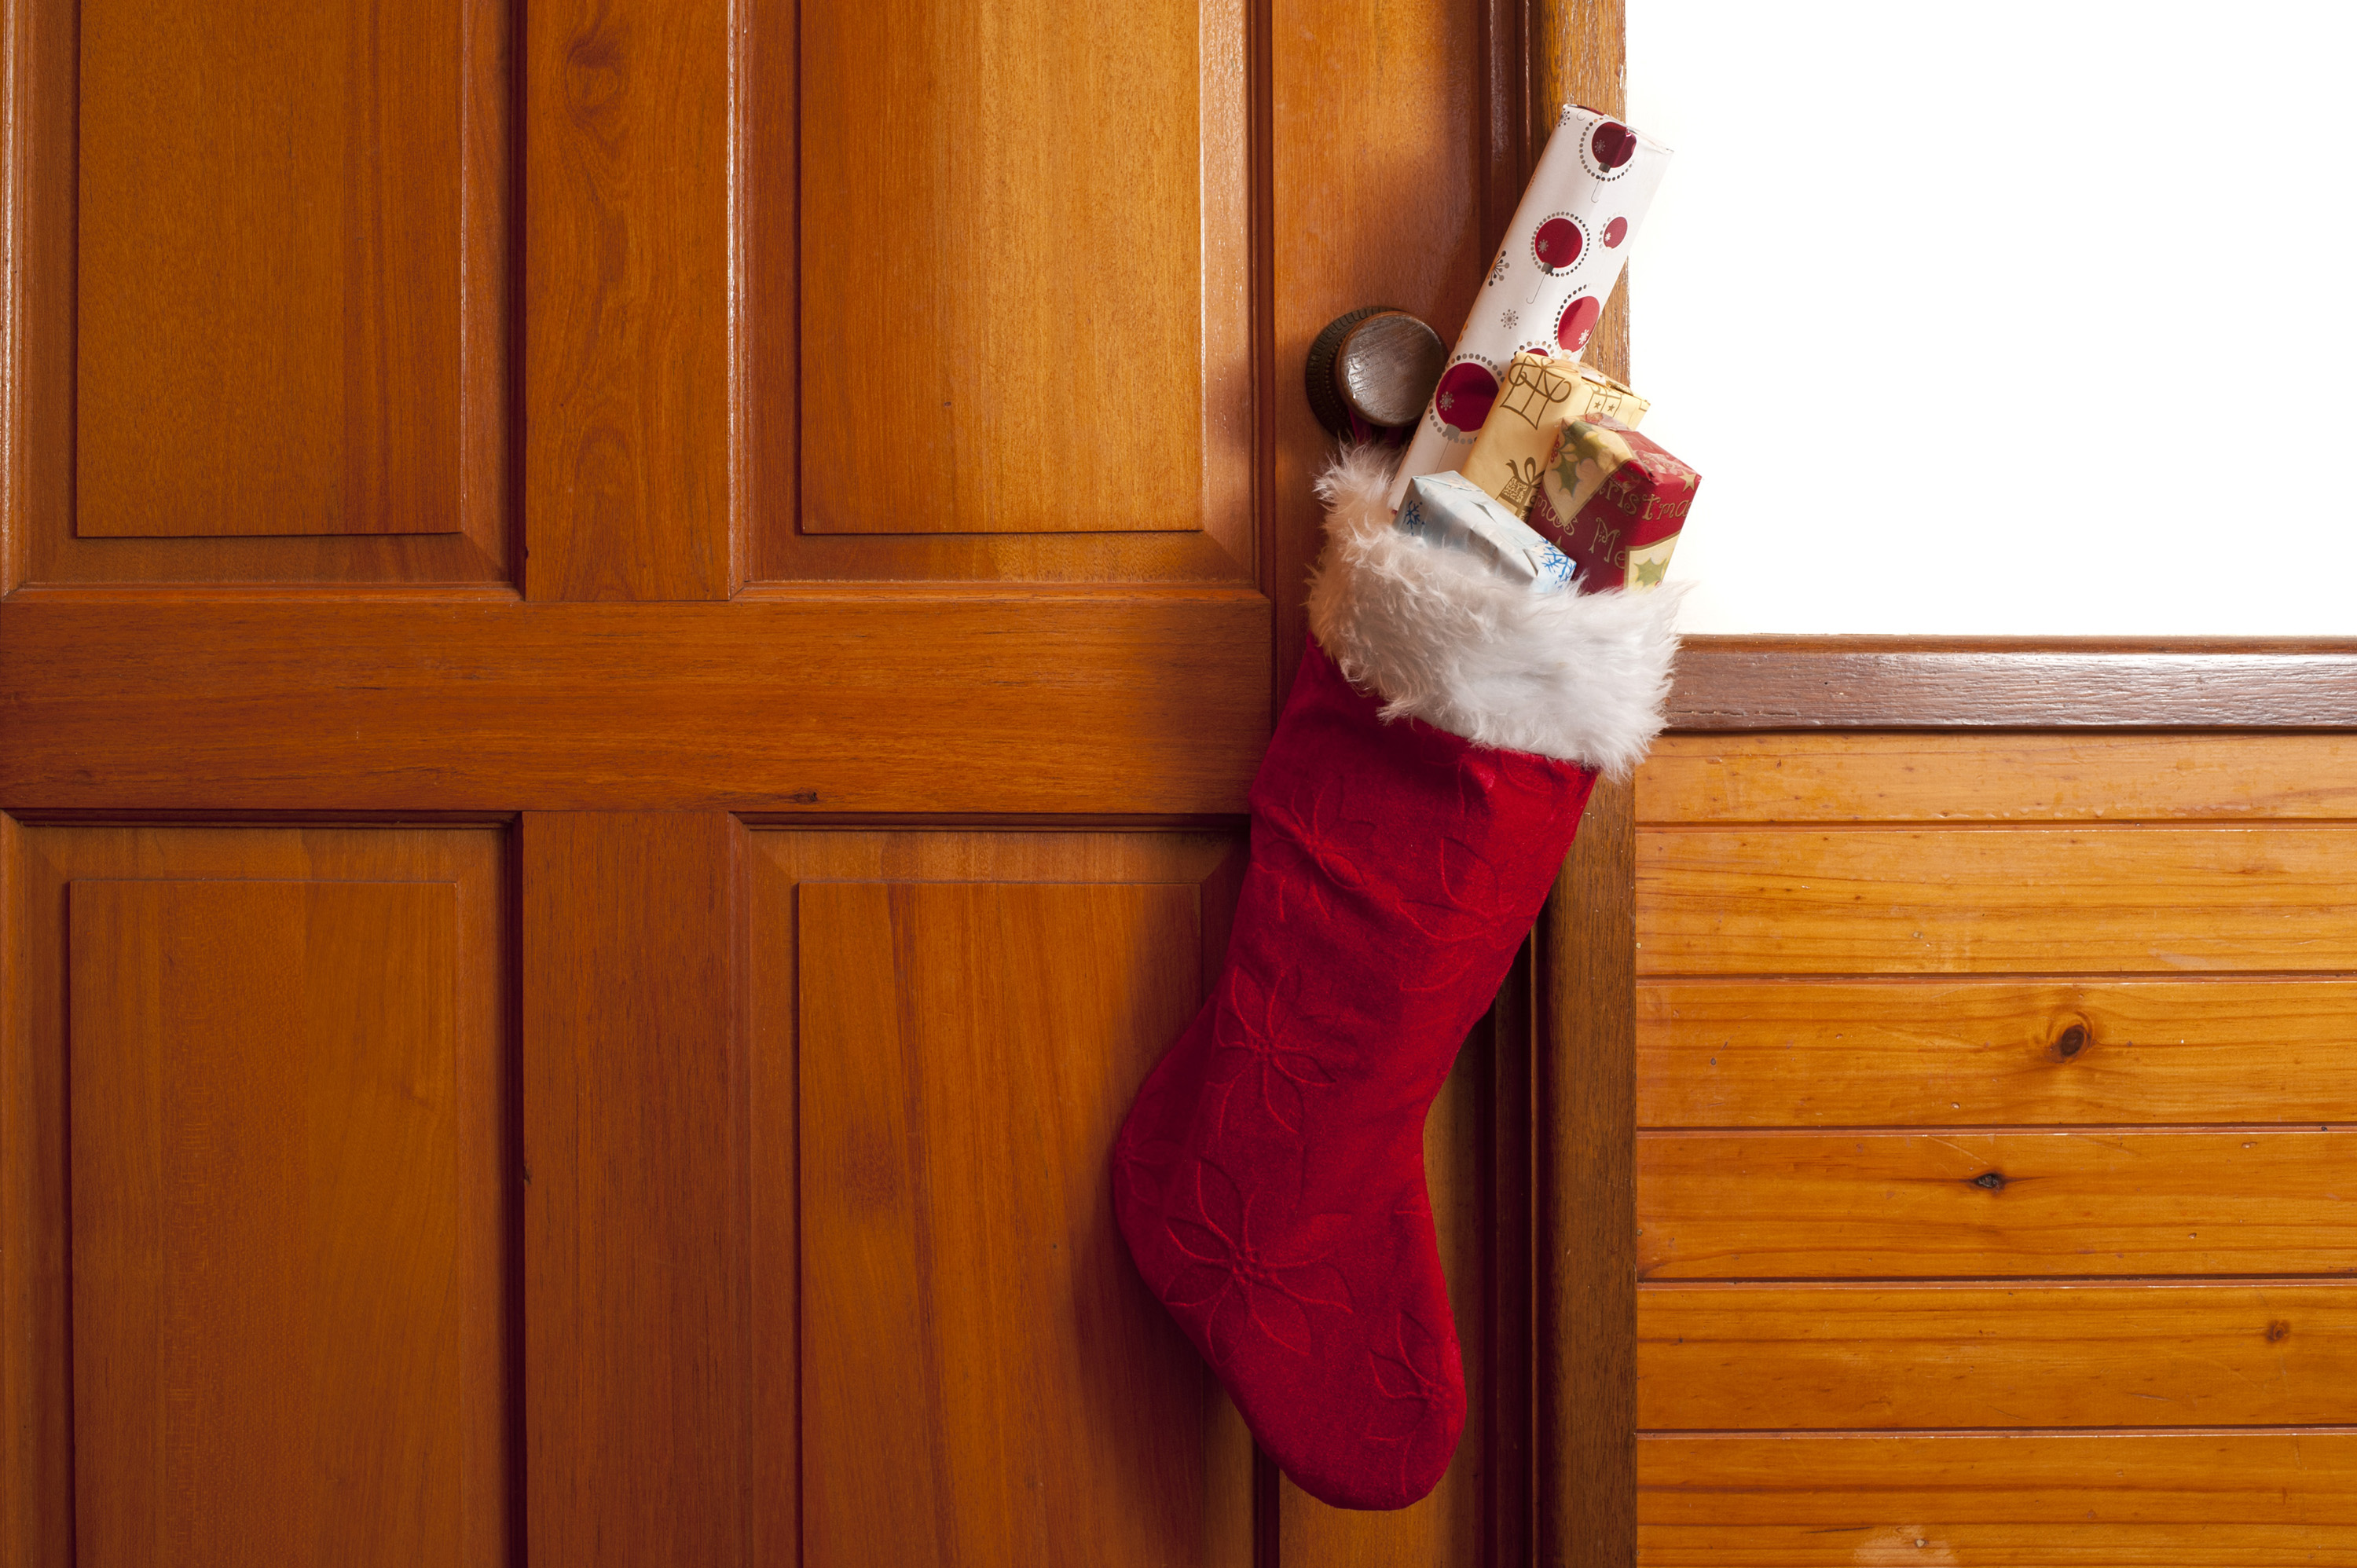 Full festive red Christmas stocking filled with tiny gifts hanging on a wooden door with copy space over a white interior panel